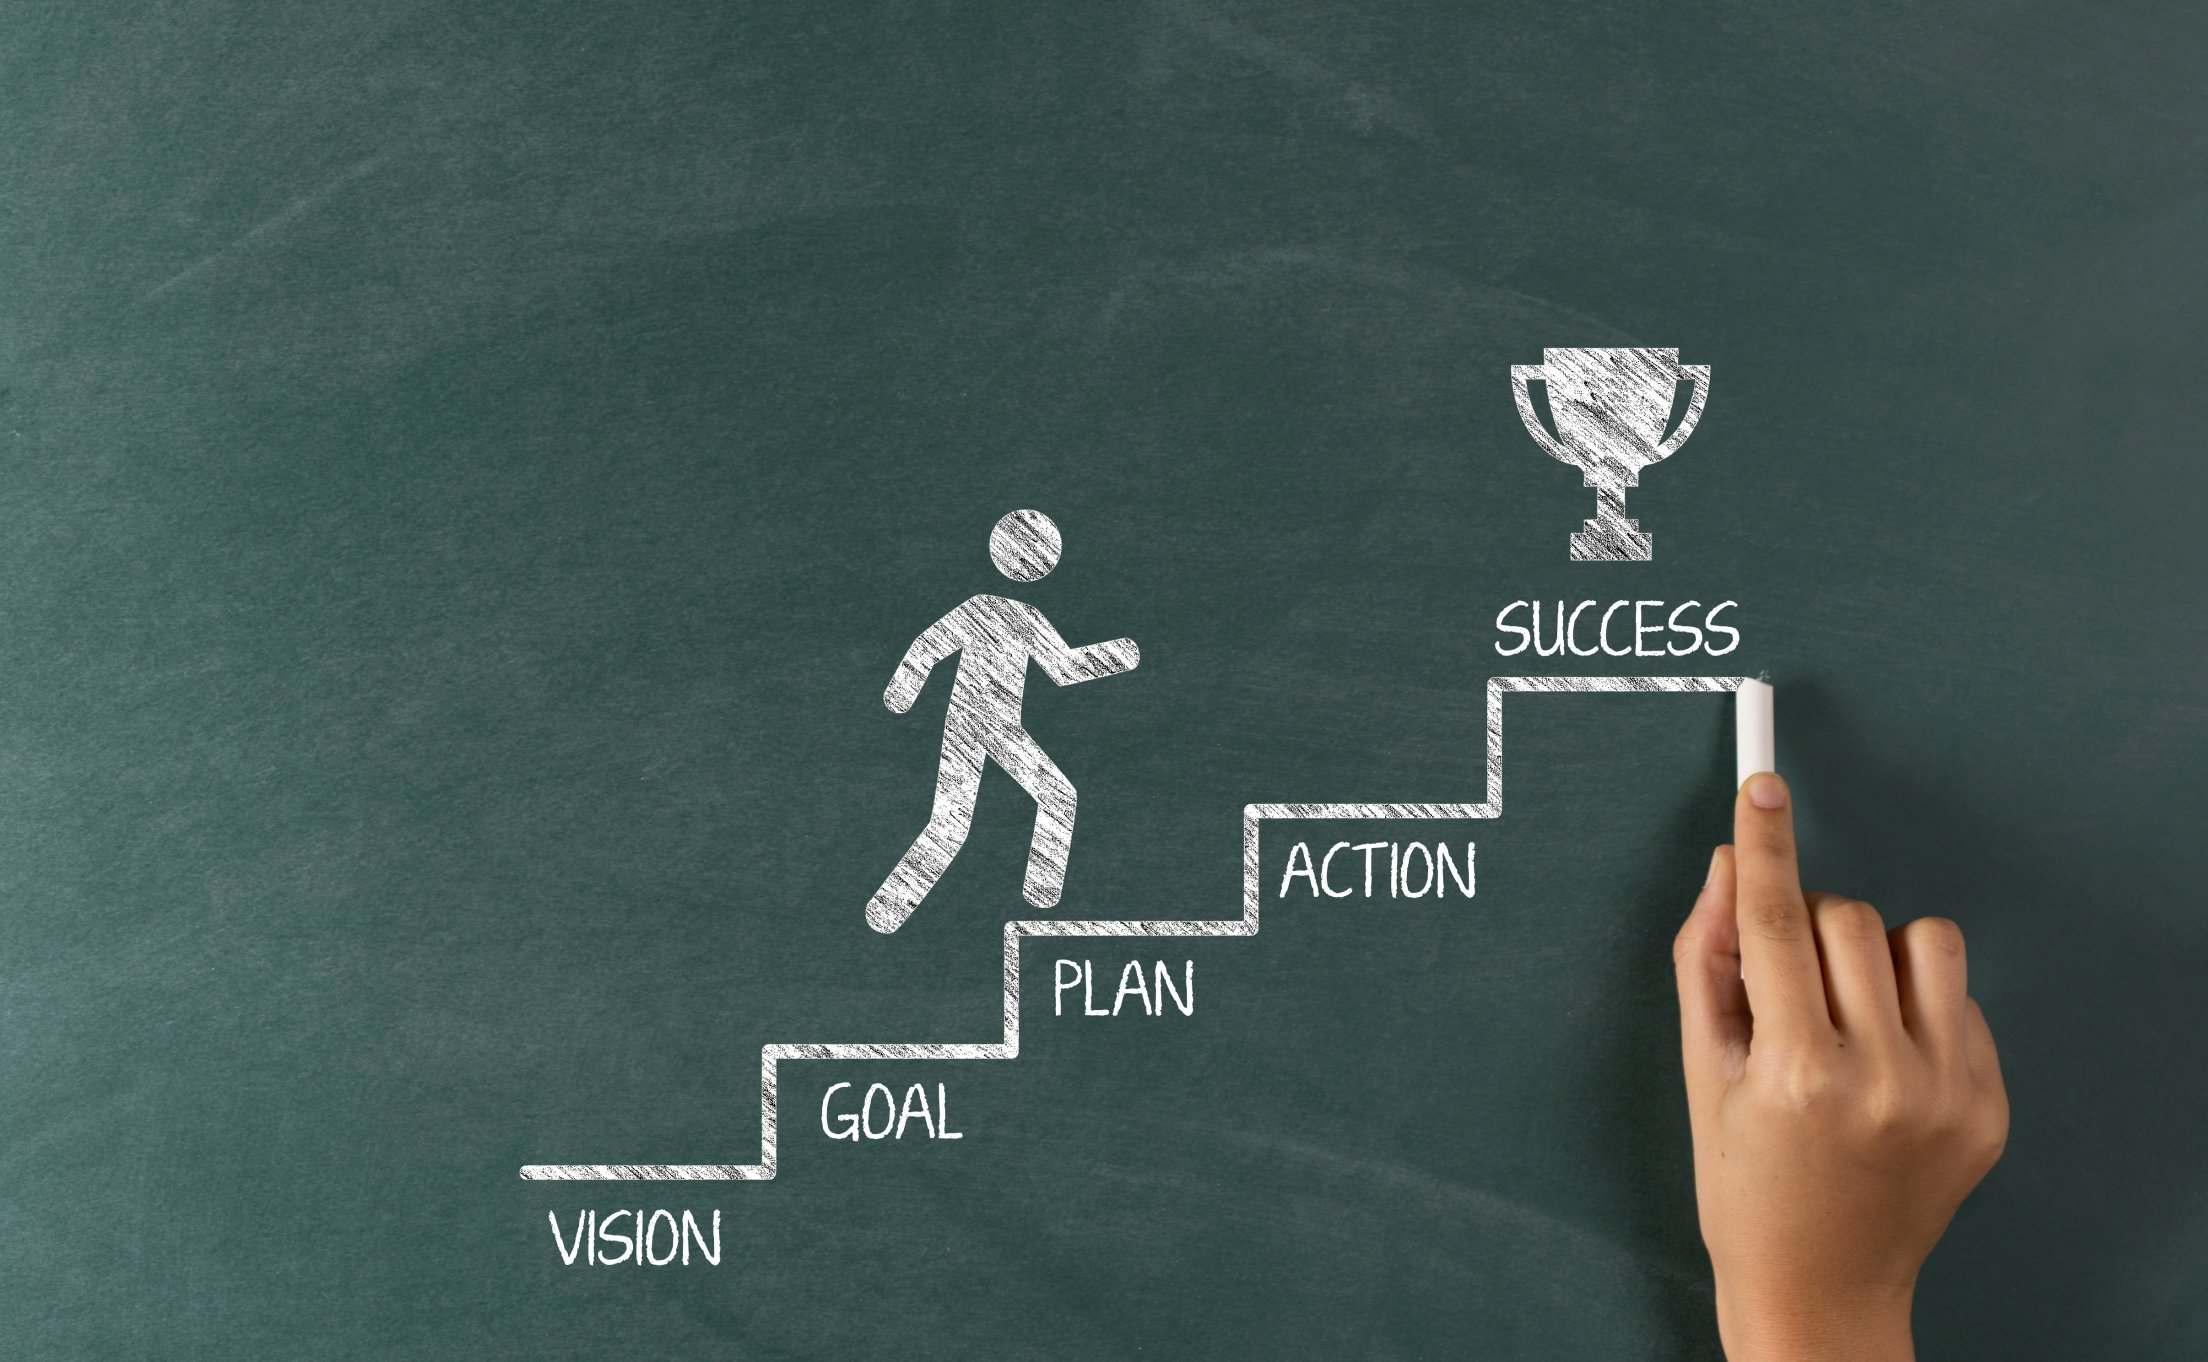 five reasons why the career ladder learning approach works so well image from gettyimages